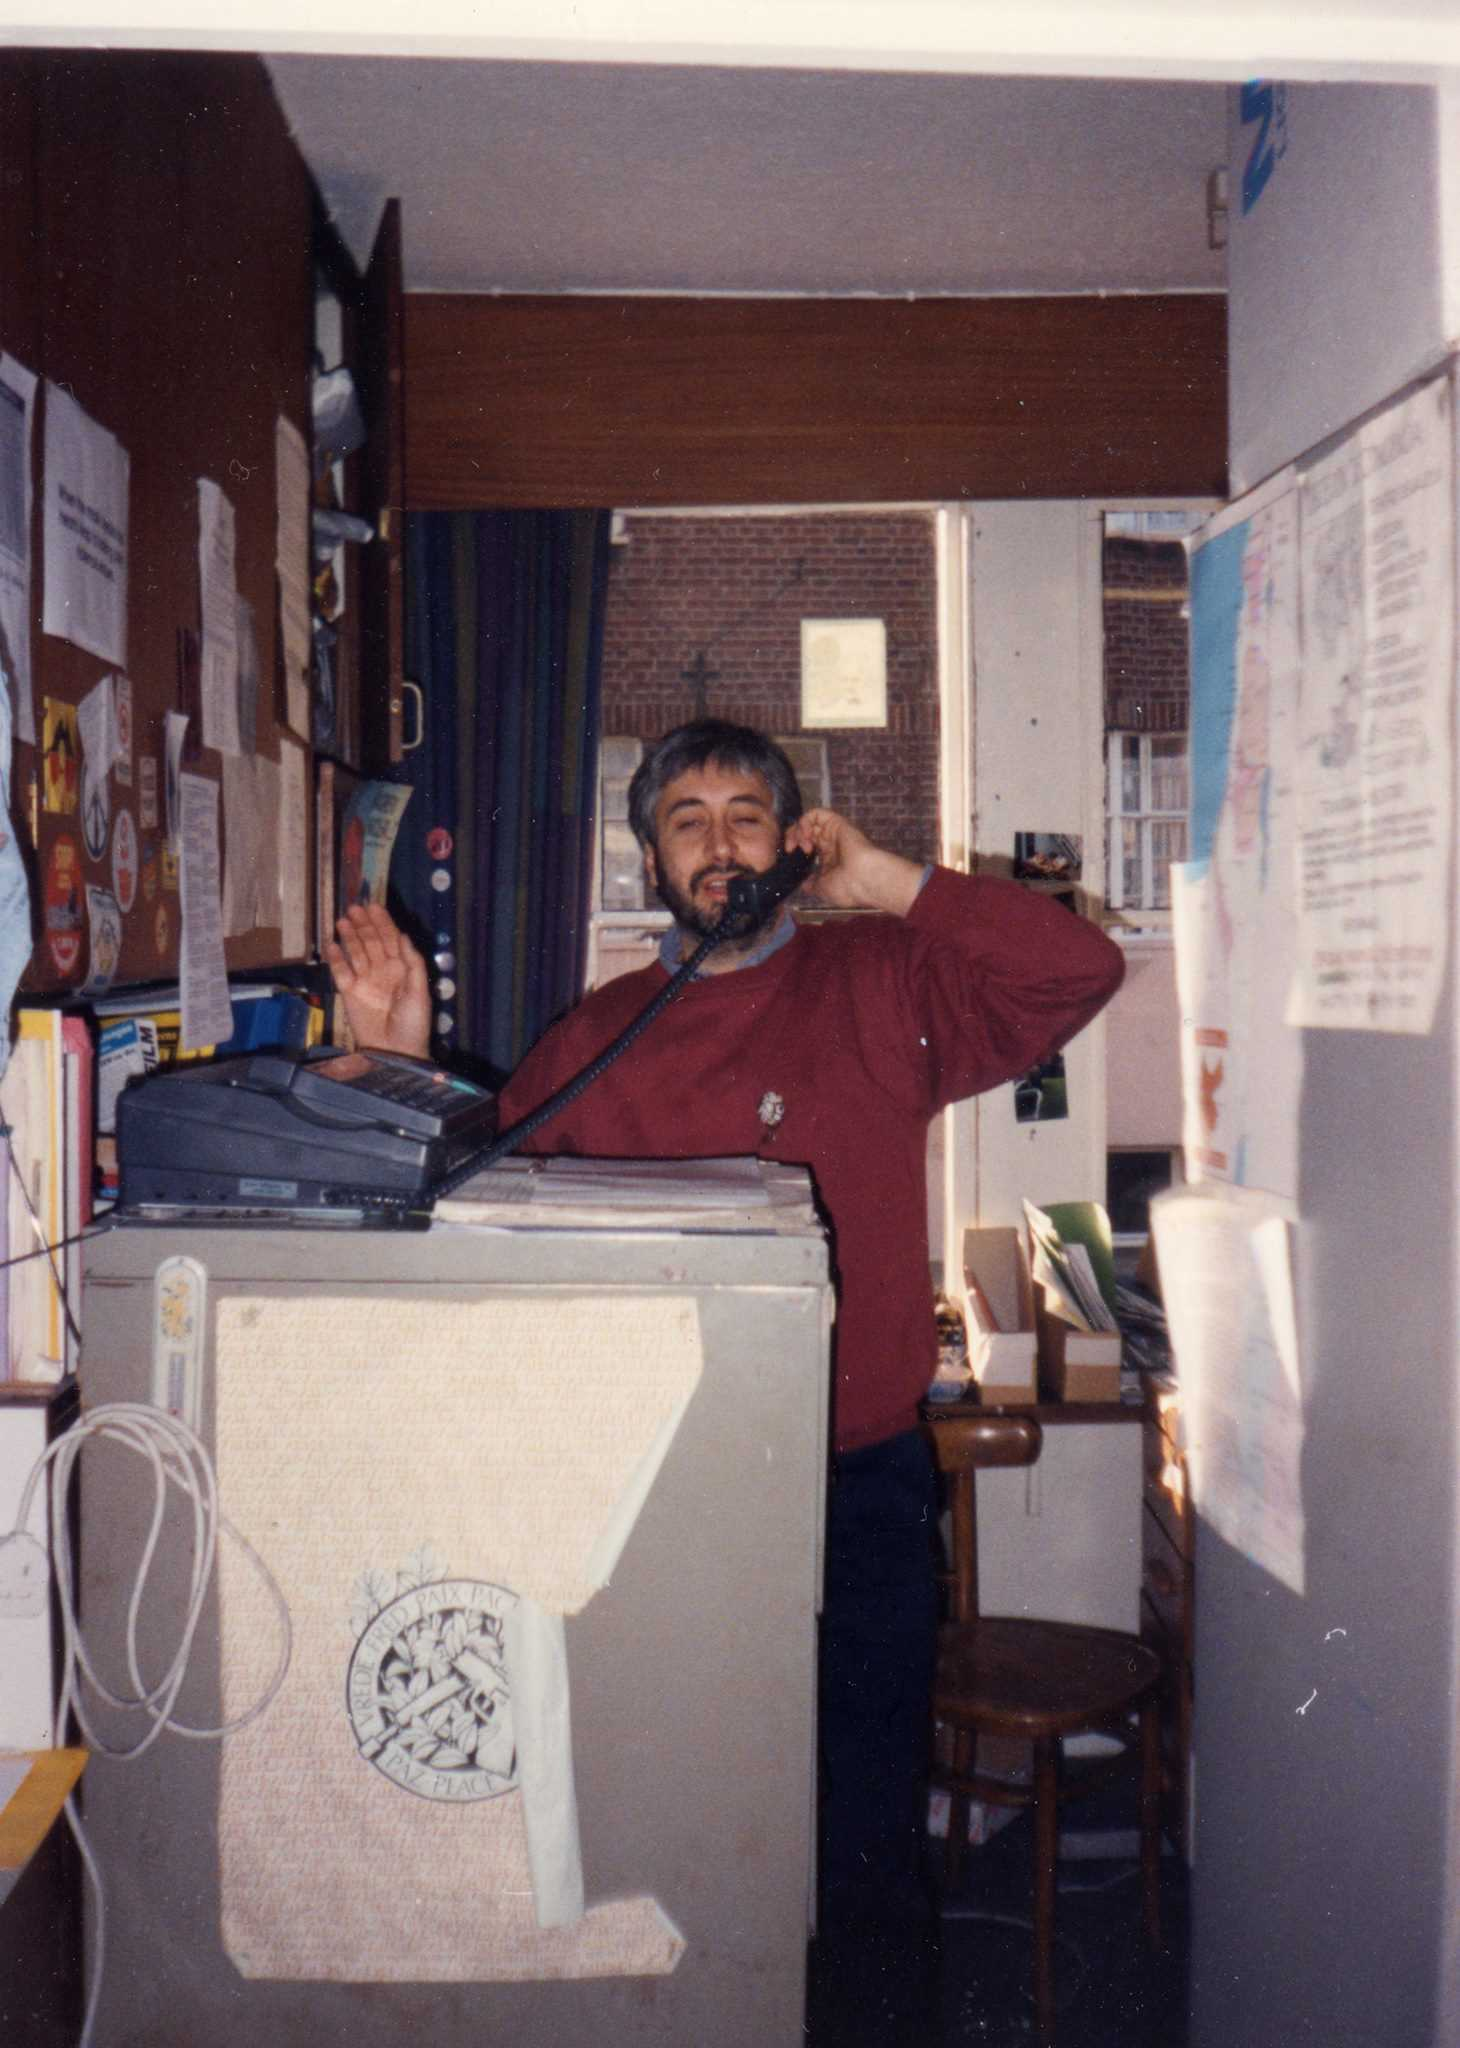 On the phone at 55 Dawes Street. Never let it be said that we put cleaning and tidying before nonviolent revolution